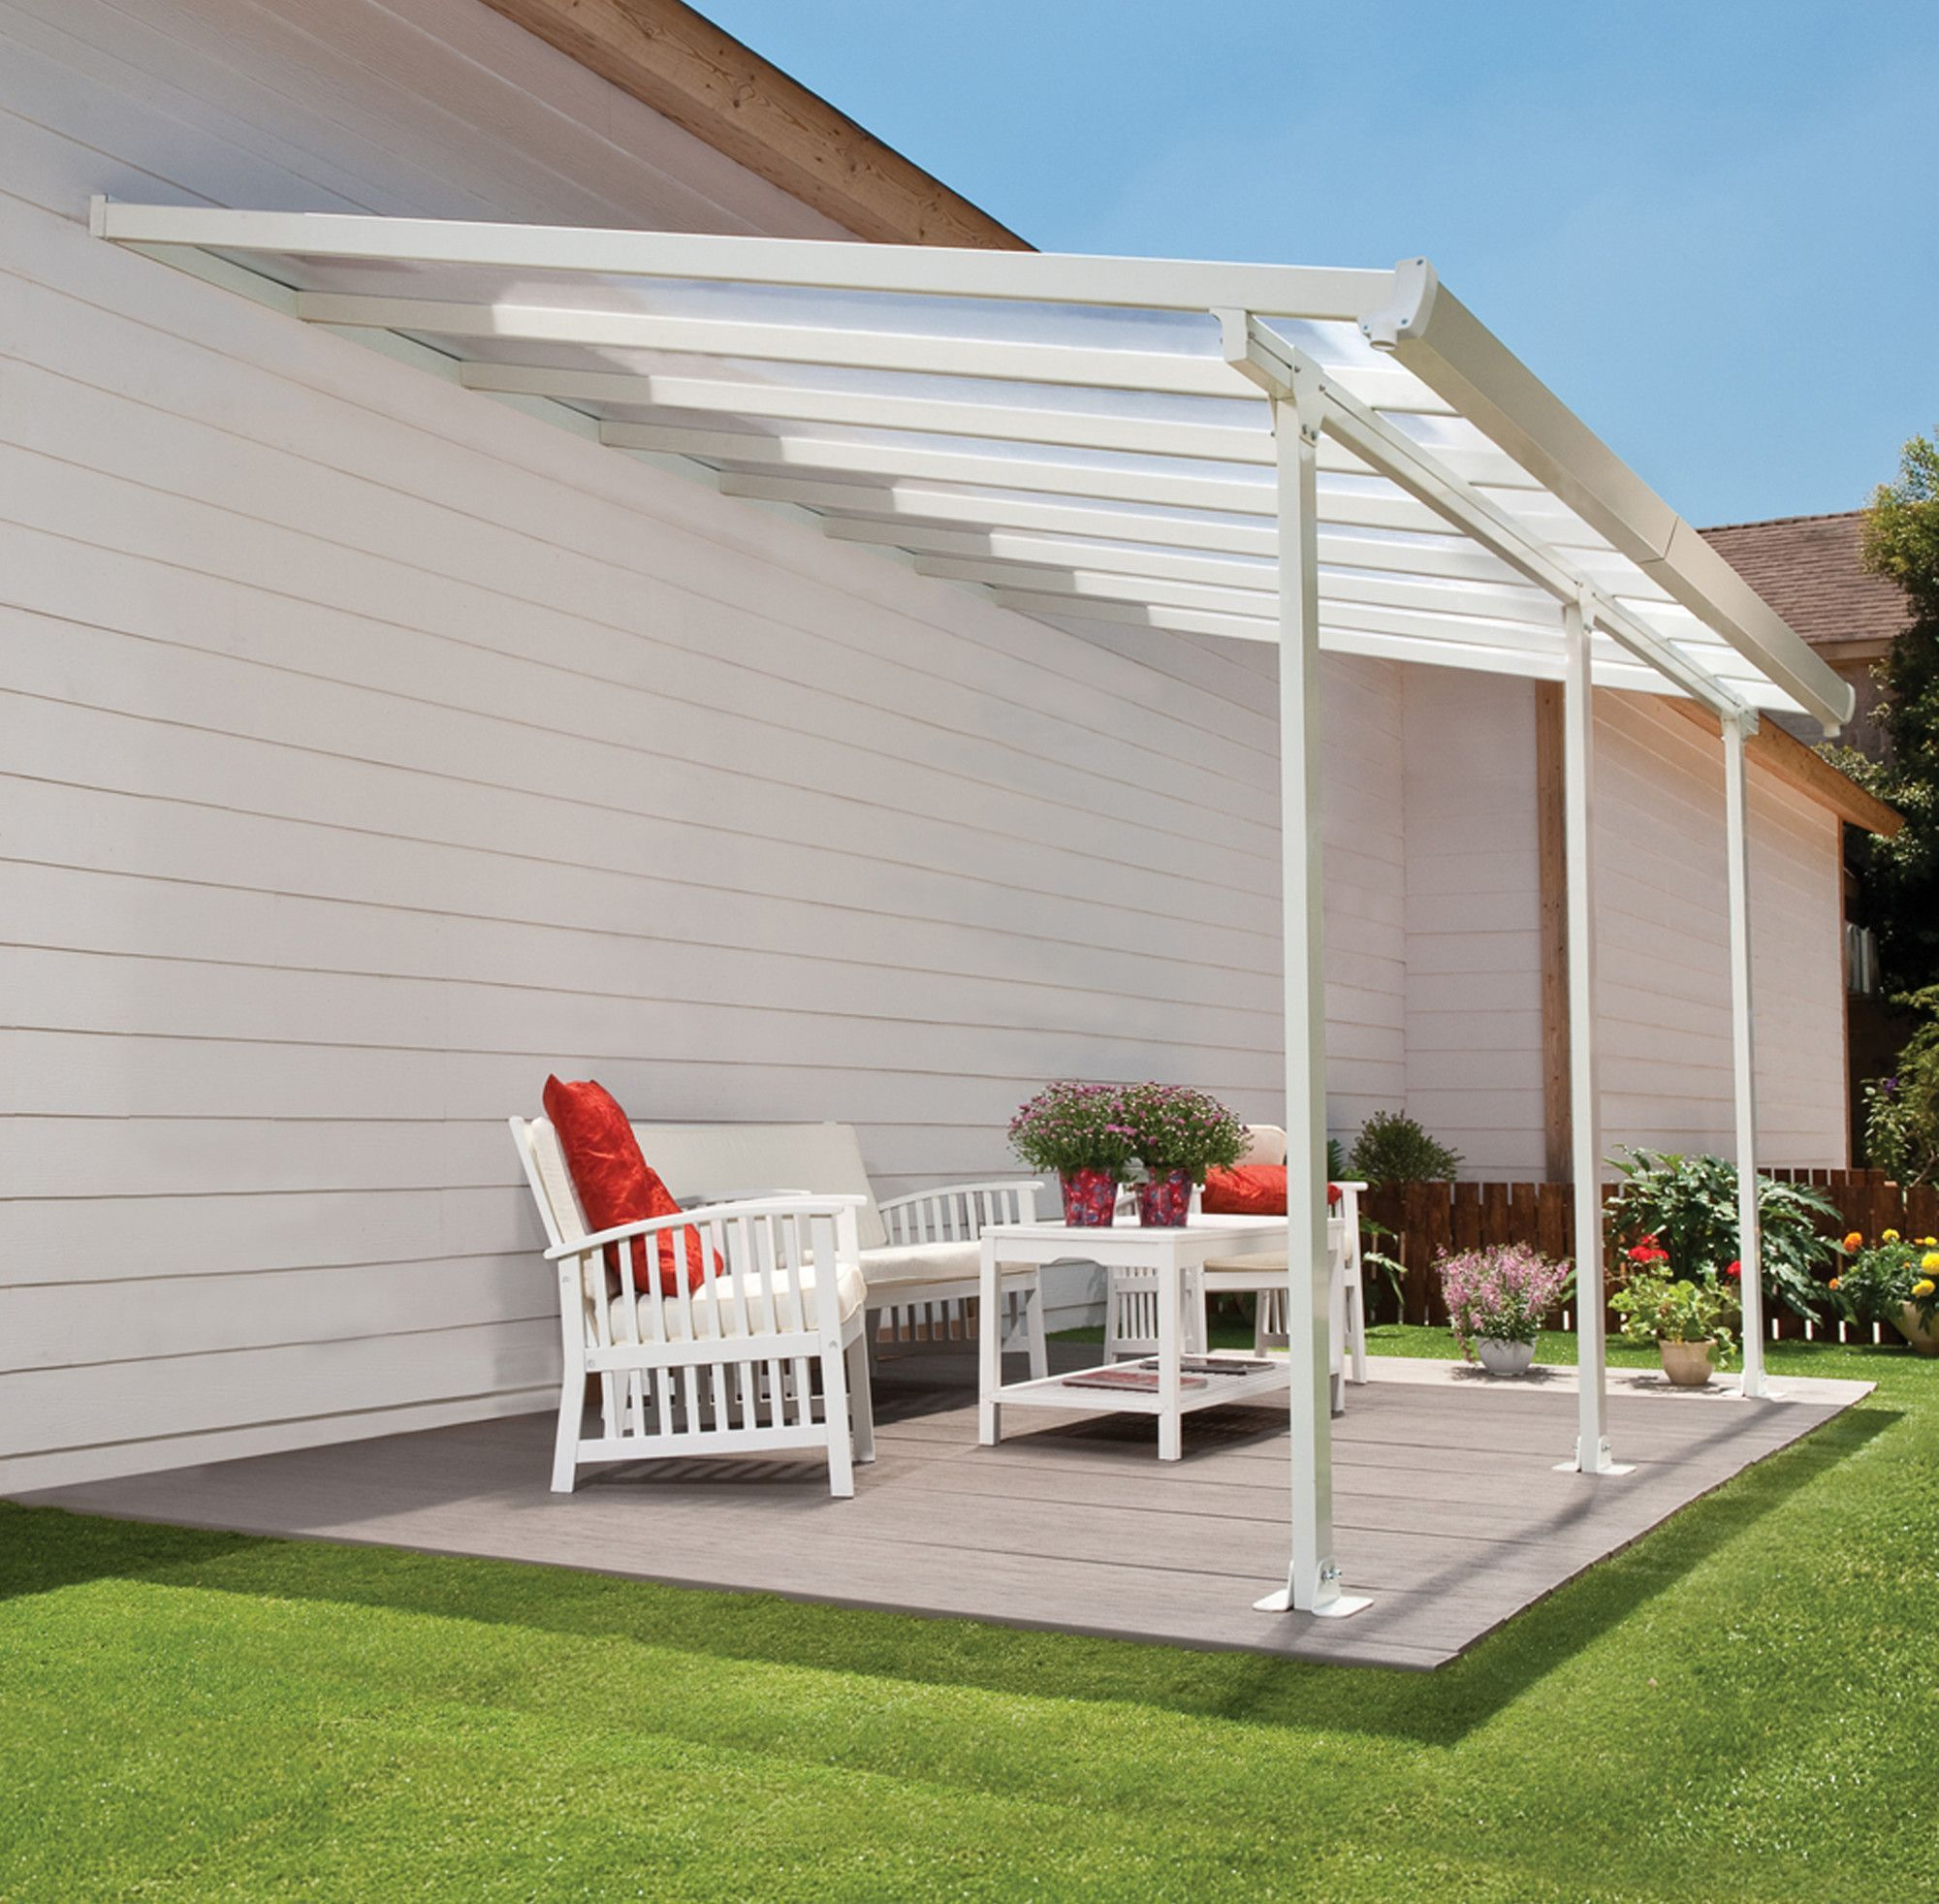 Feria™ 10 ft H x 26 ft W x 13 ft D Patio Cover Awning